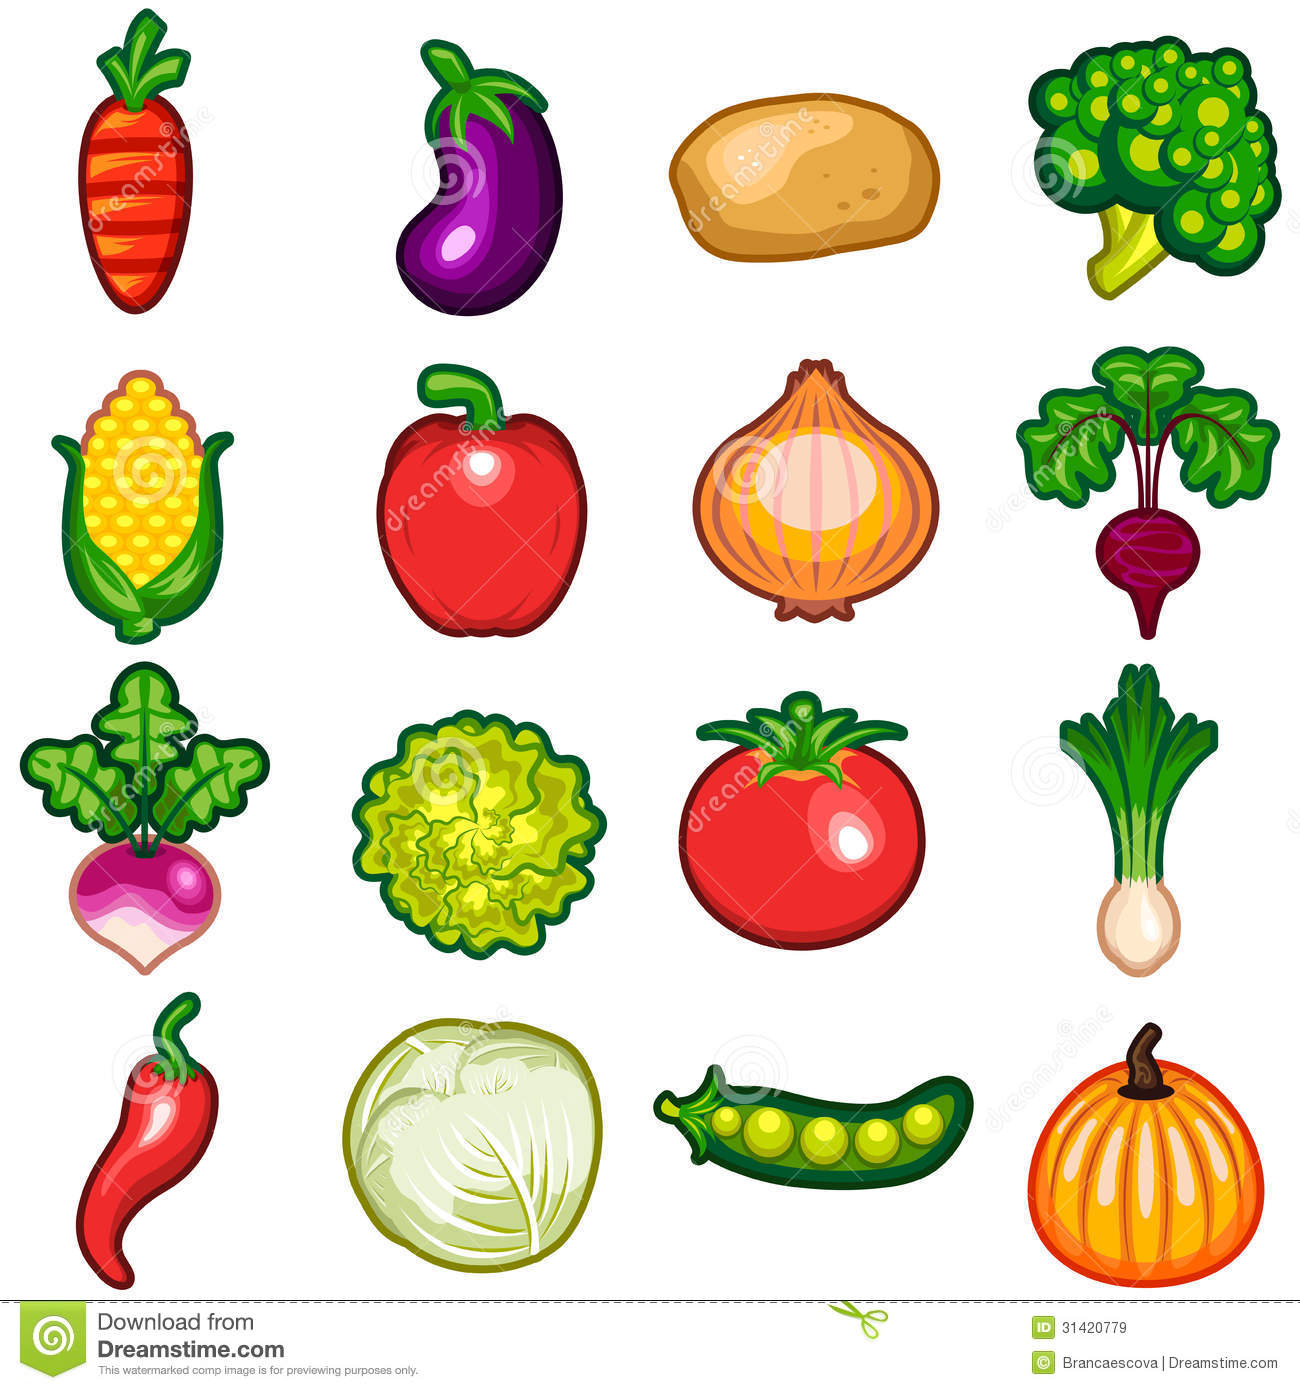 Types Of Veges For Kids Drawing